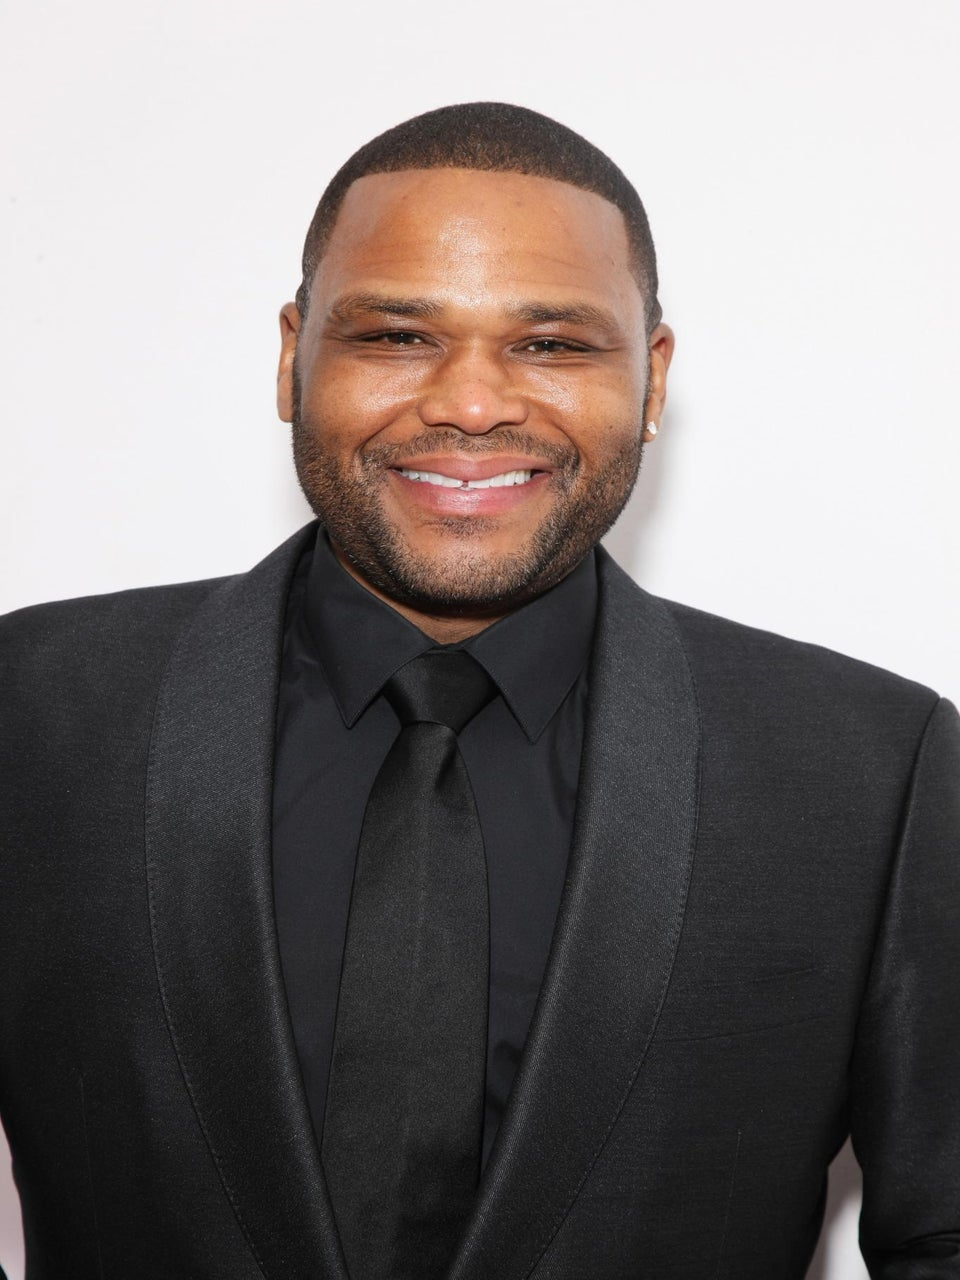 Anthony Anderson Shares Why It's Important For Black-ish To Highlight Important Issues In The Black Community